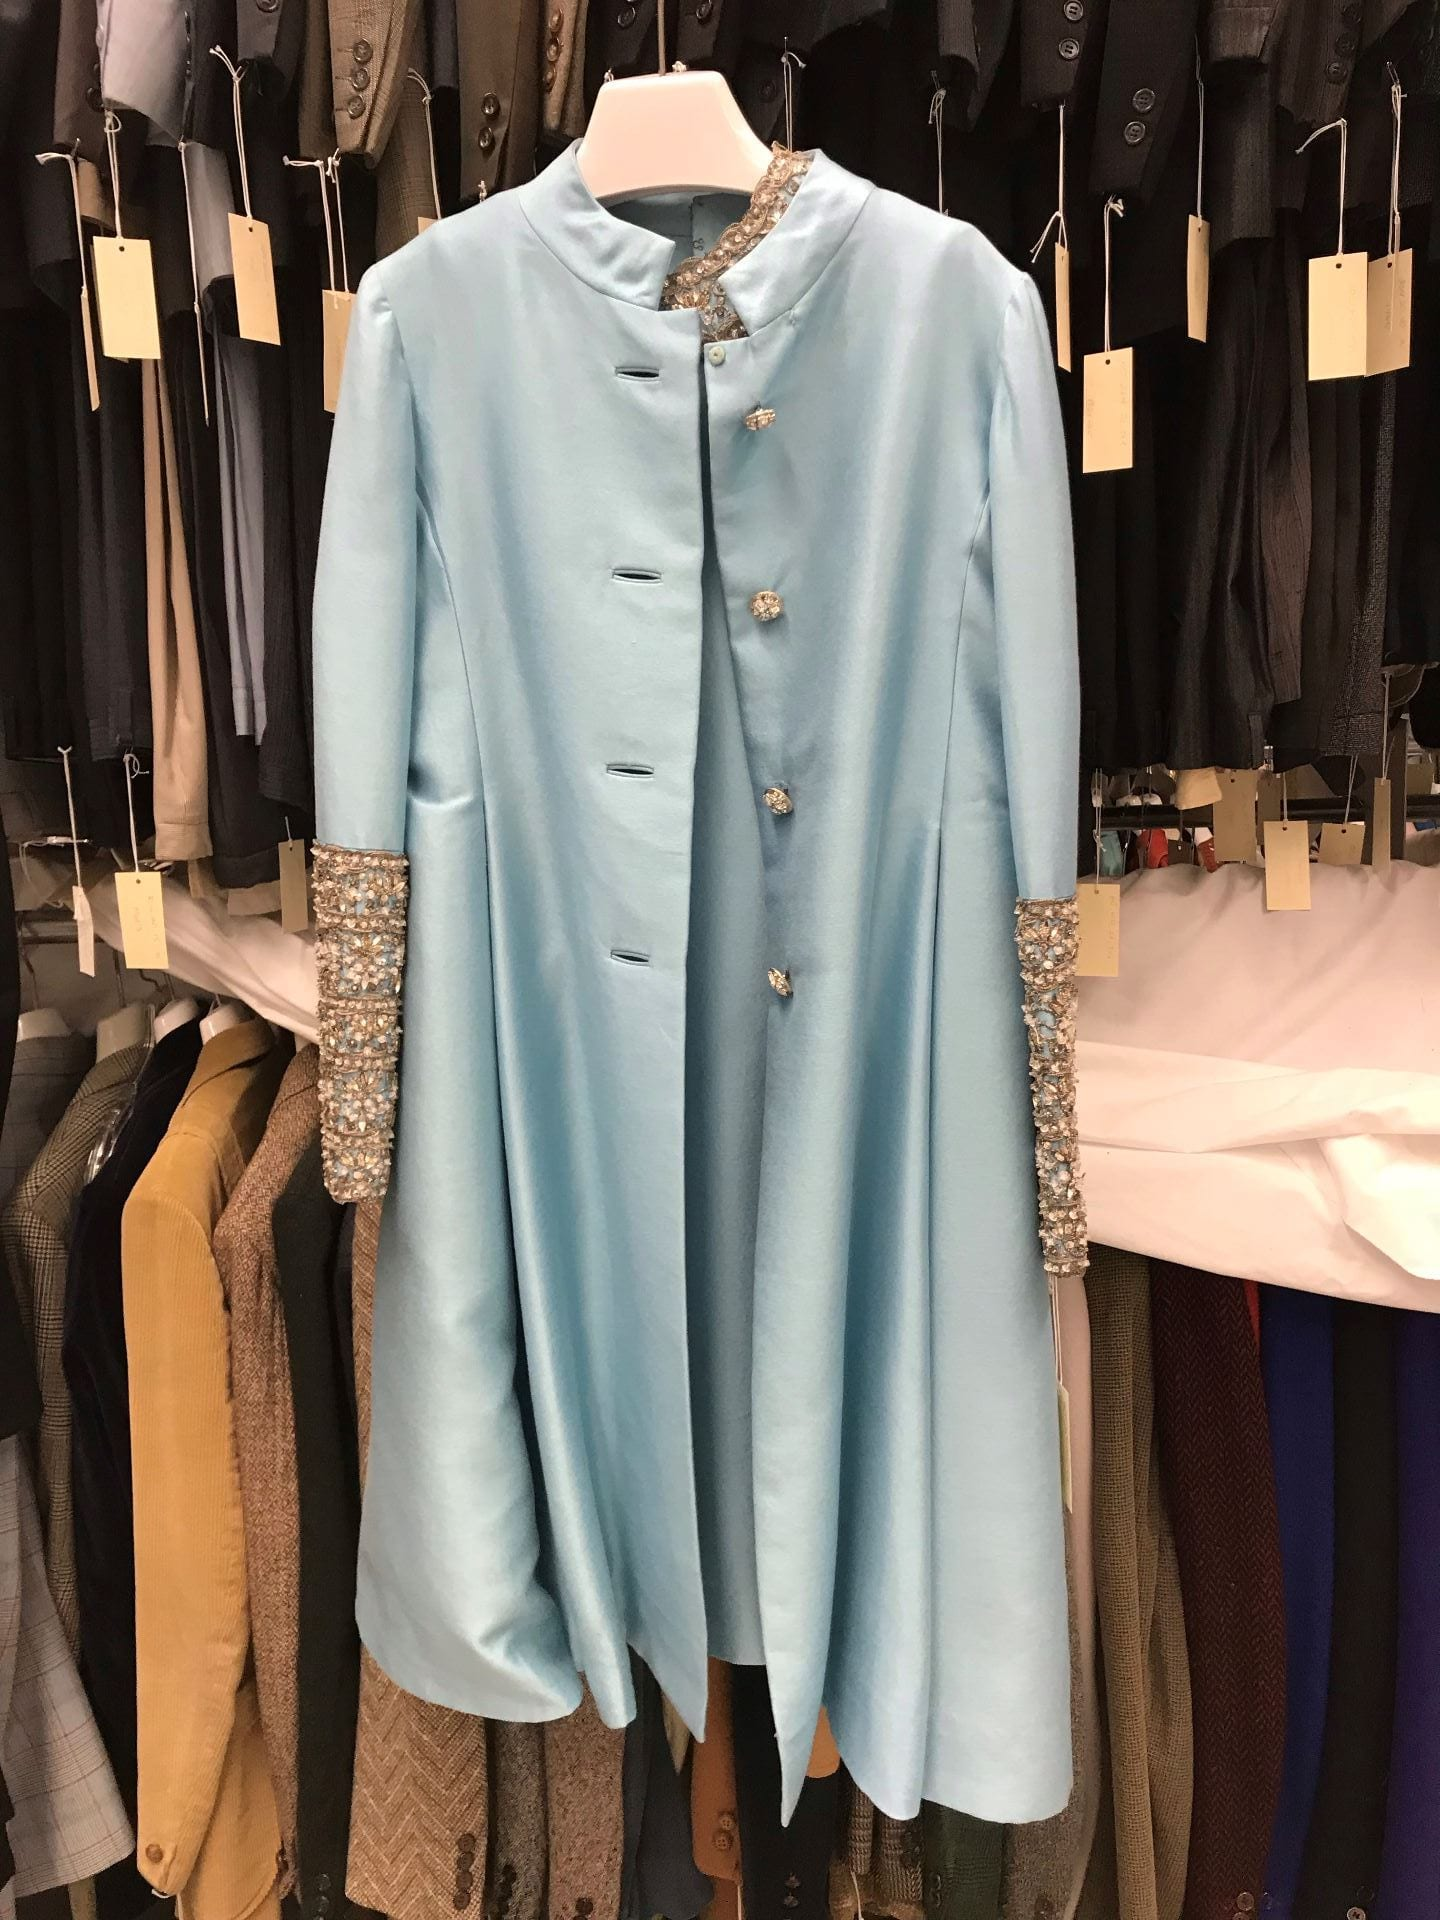 dd1ea1159c1cc0 To the right is a Malcolm Starr light blue wool short evening dress and  coat with a silver braid along with beading on the dress neckline and coat  sleeves.